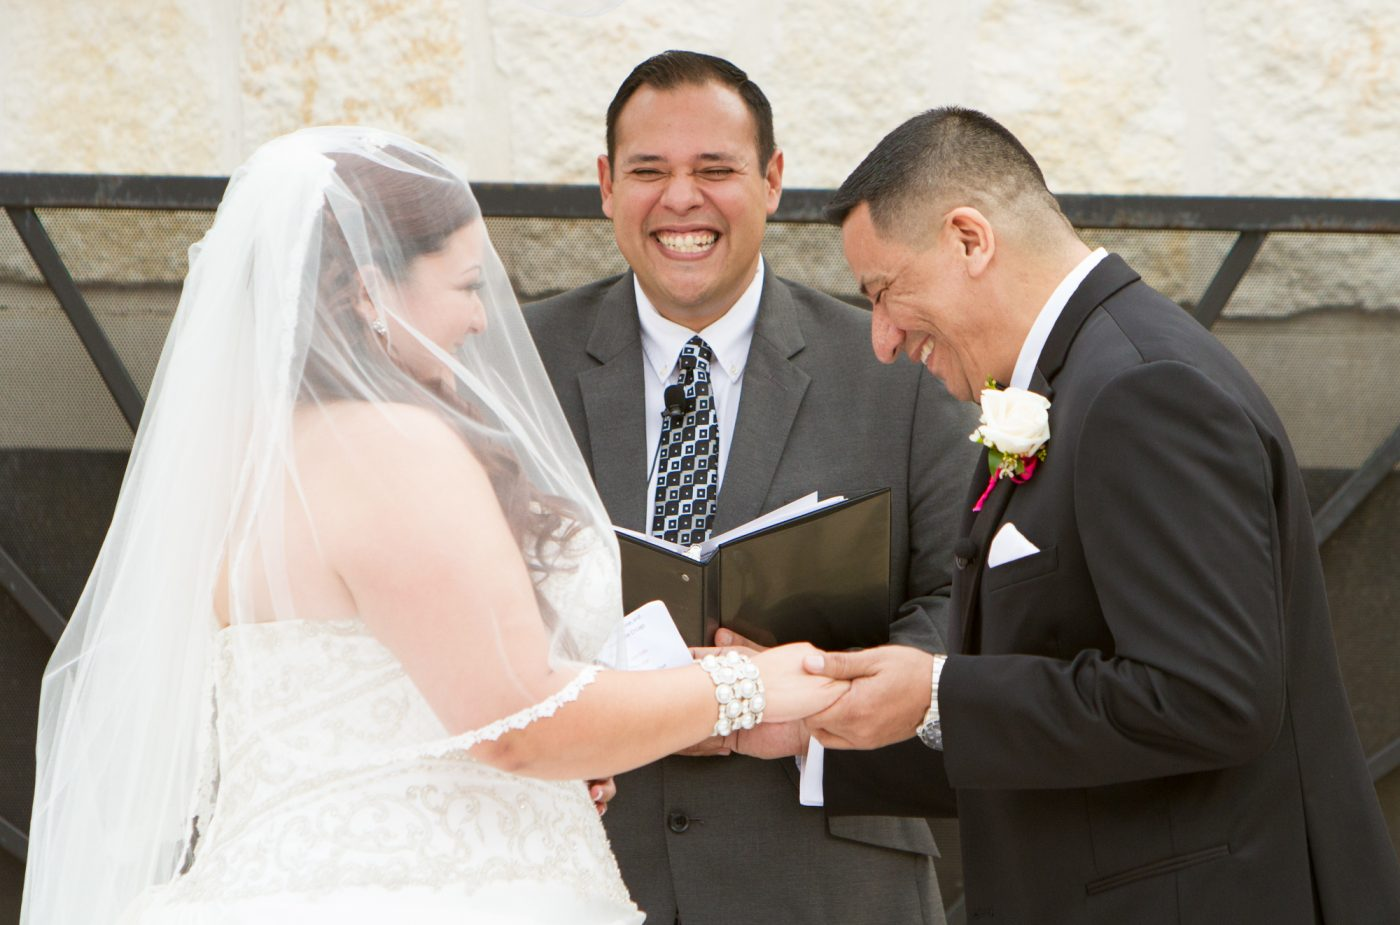 About Texas Wedding Ministers Professional Wedding Officiants